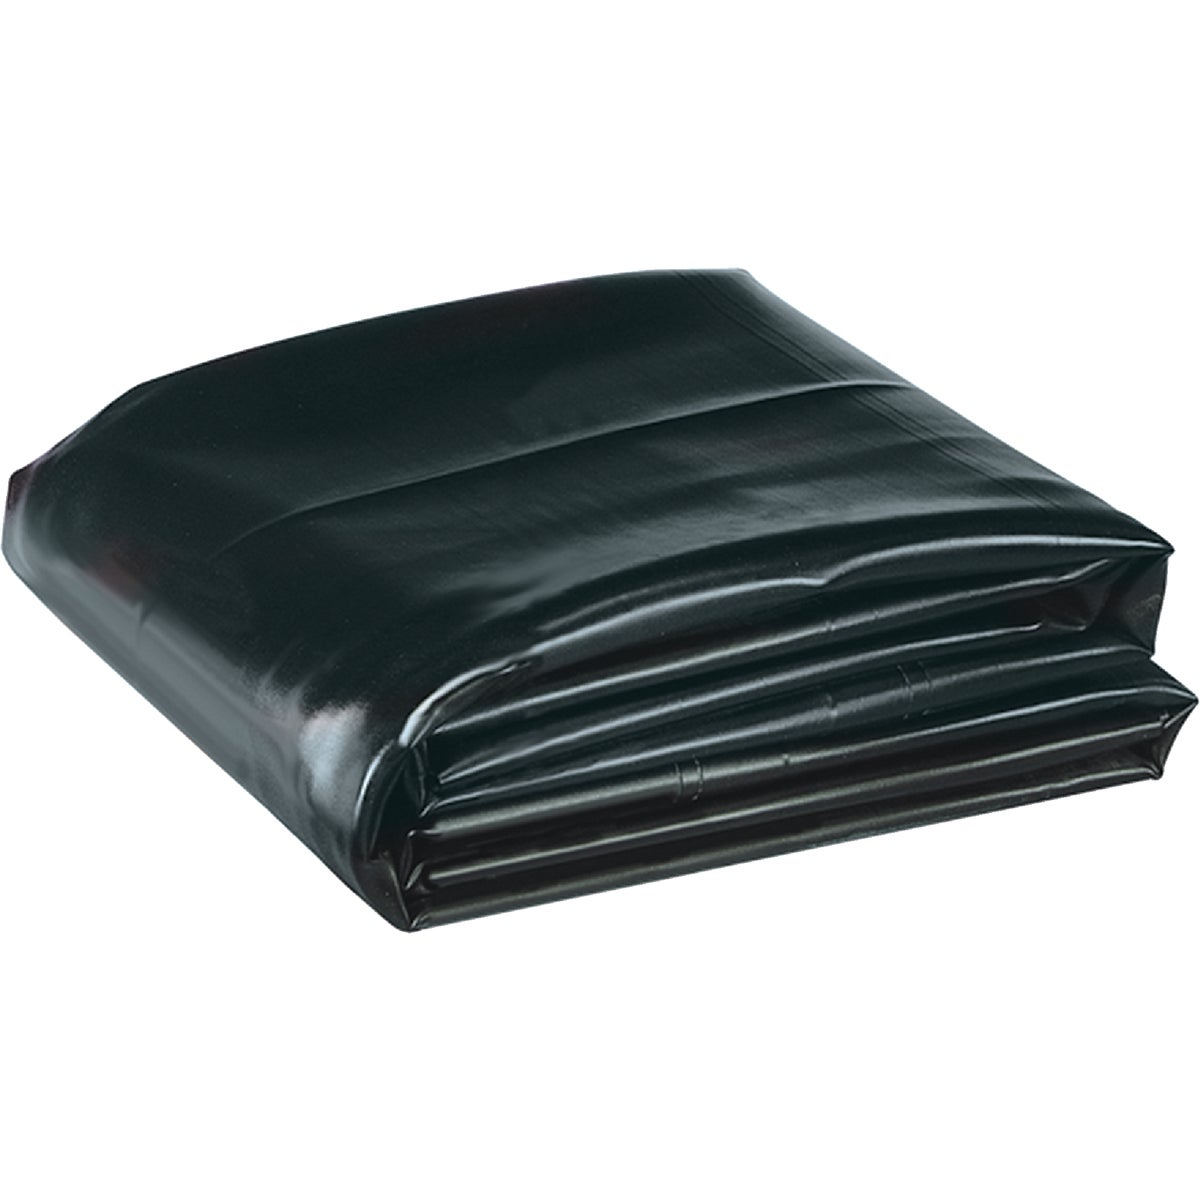 10'X13' POND PVC LINER - PVC10X13 by Geo Global Partners